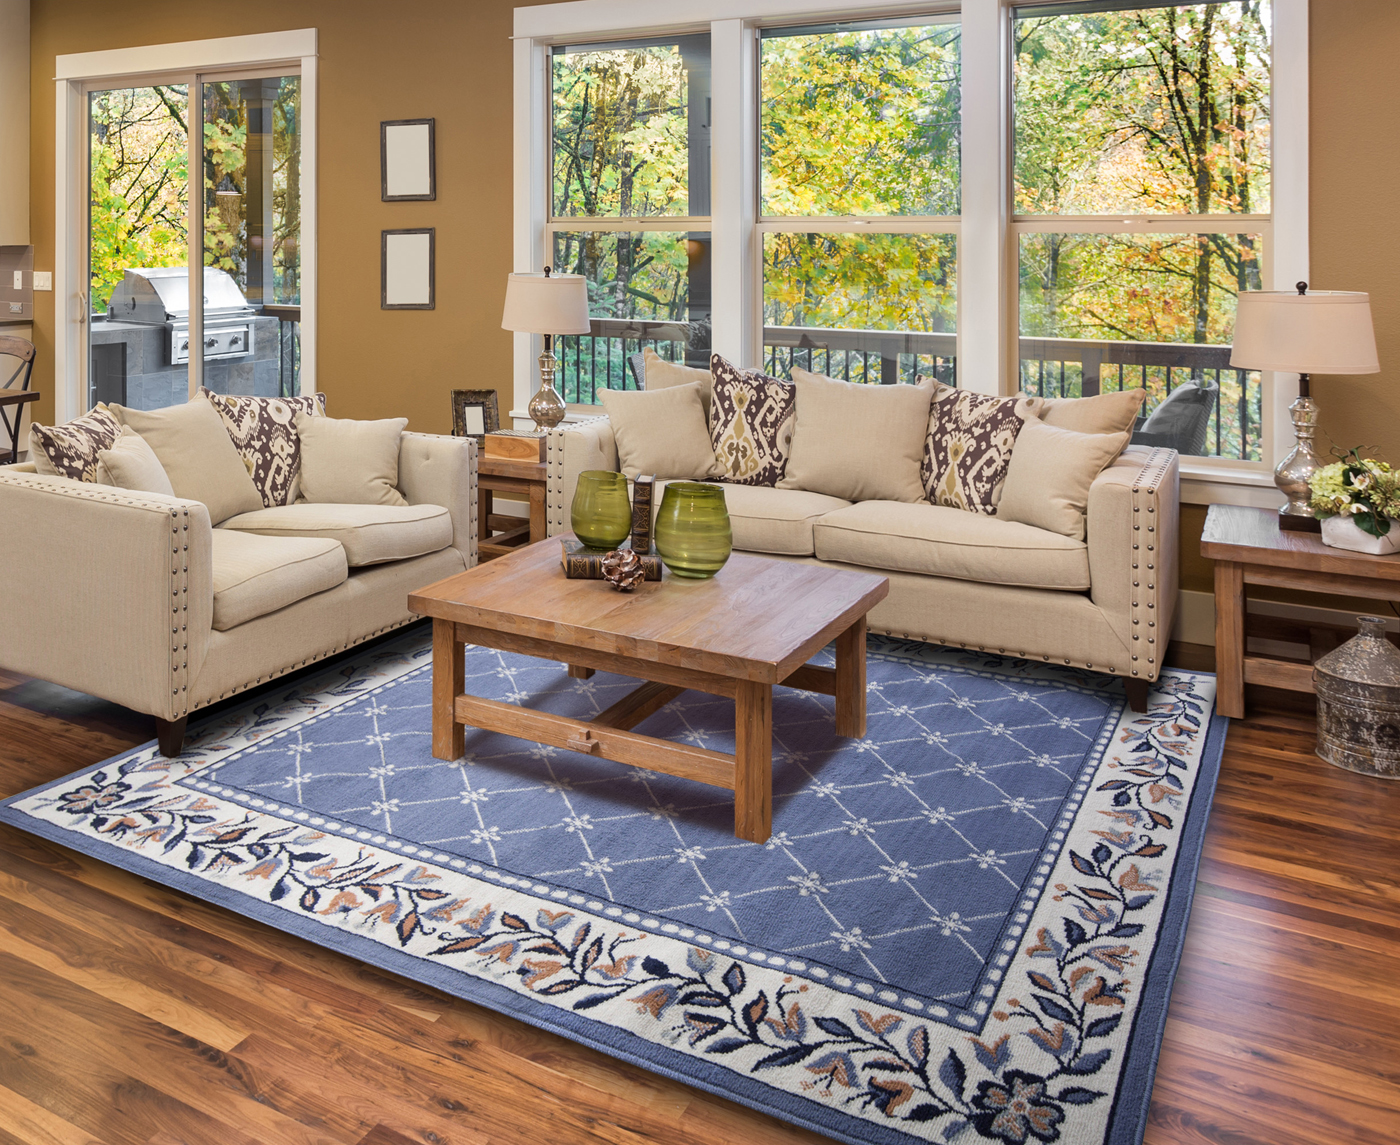 blue persian rug living room images of small country rooms oriental area 5 x 8 medium carpet 15 actual 2 7 4